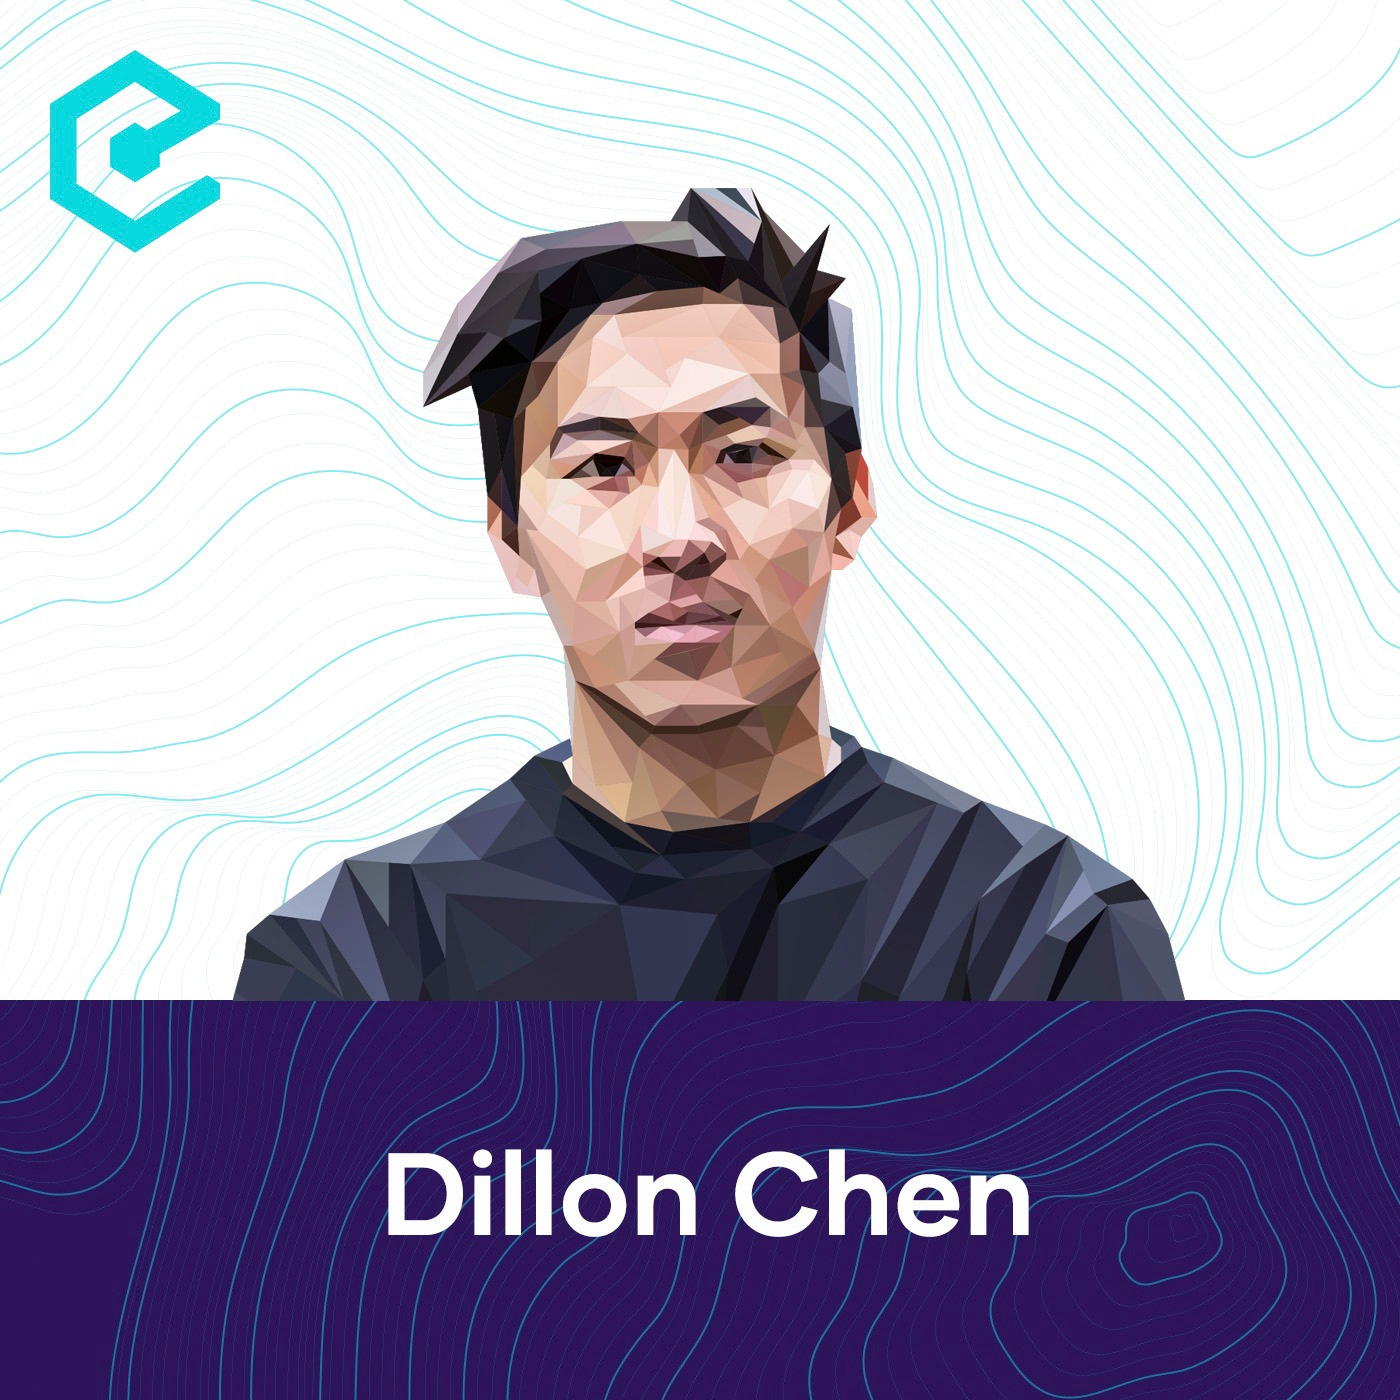 Dillon Chen: Edgeware – Coordinating Distributed Communities With On-Chain Governance